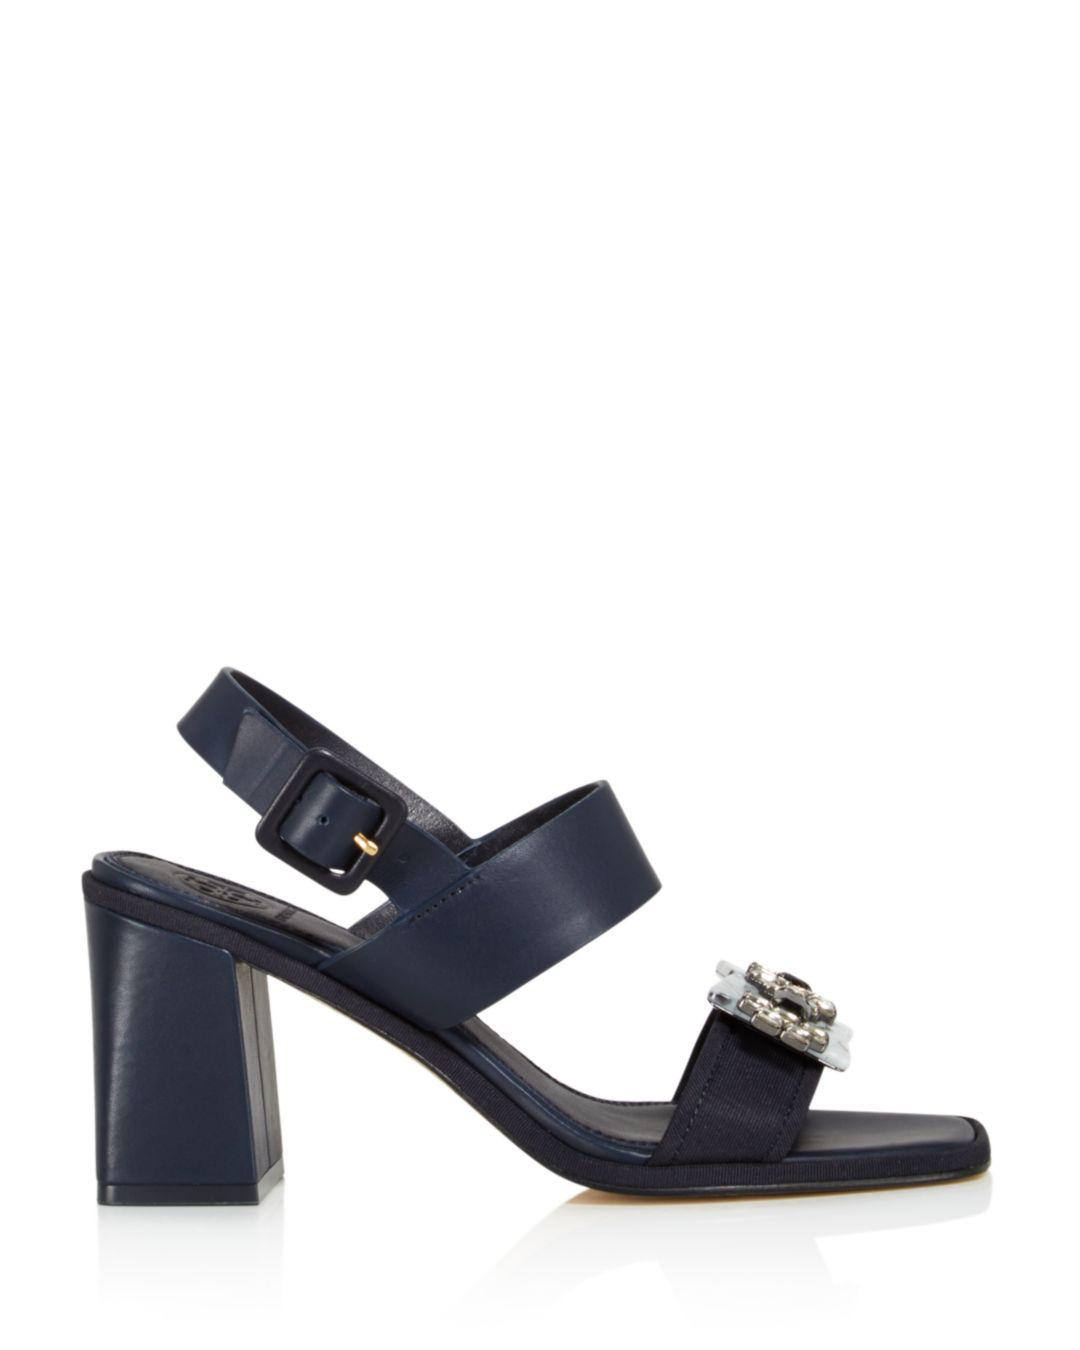 e6e4865c4ac Tory Burch Women s Delaney Embellished Leather Block Heel Sandals in Blue -  Lyst